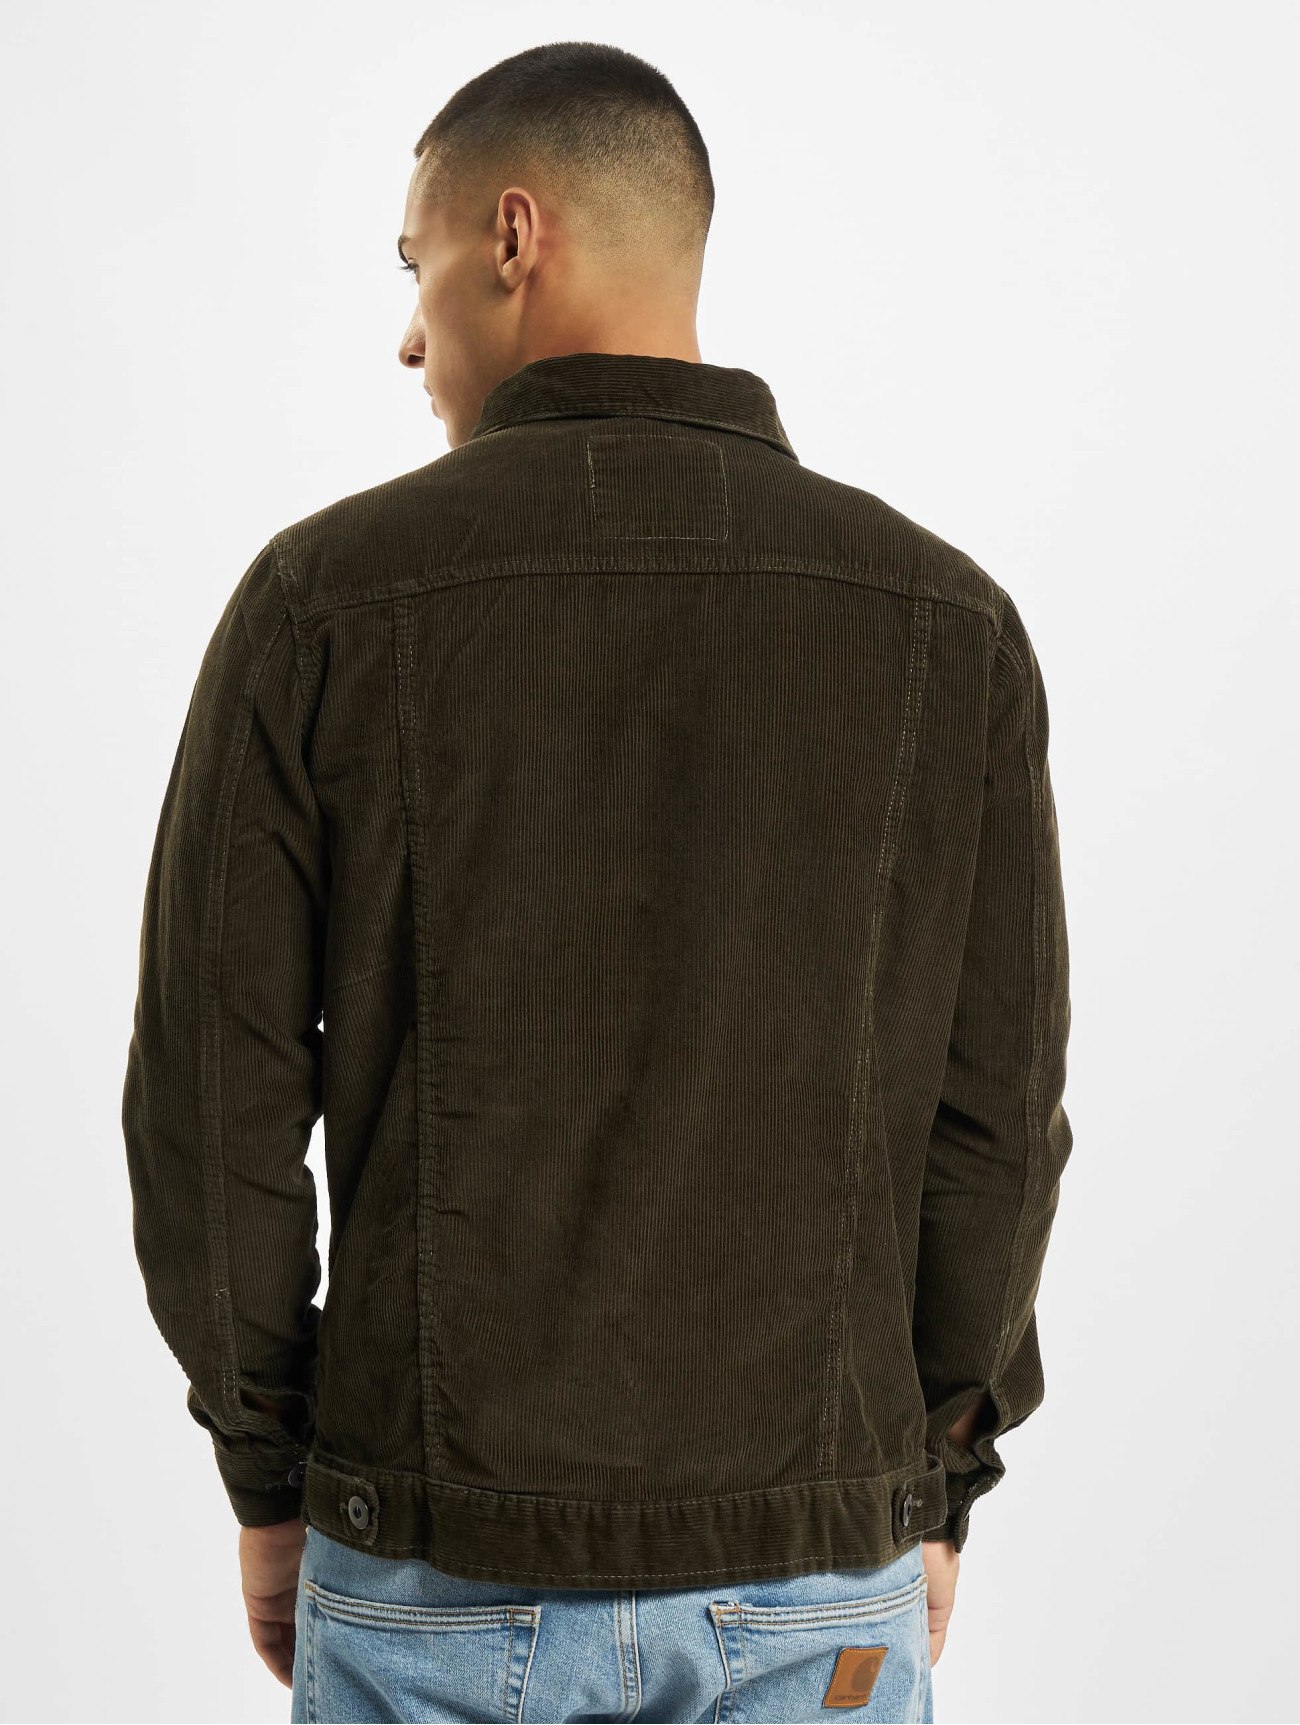 Urban Classics Jacket / Lightweight Jacket Corduroy  in olive 636501